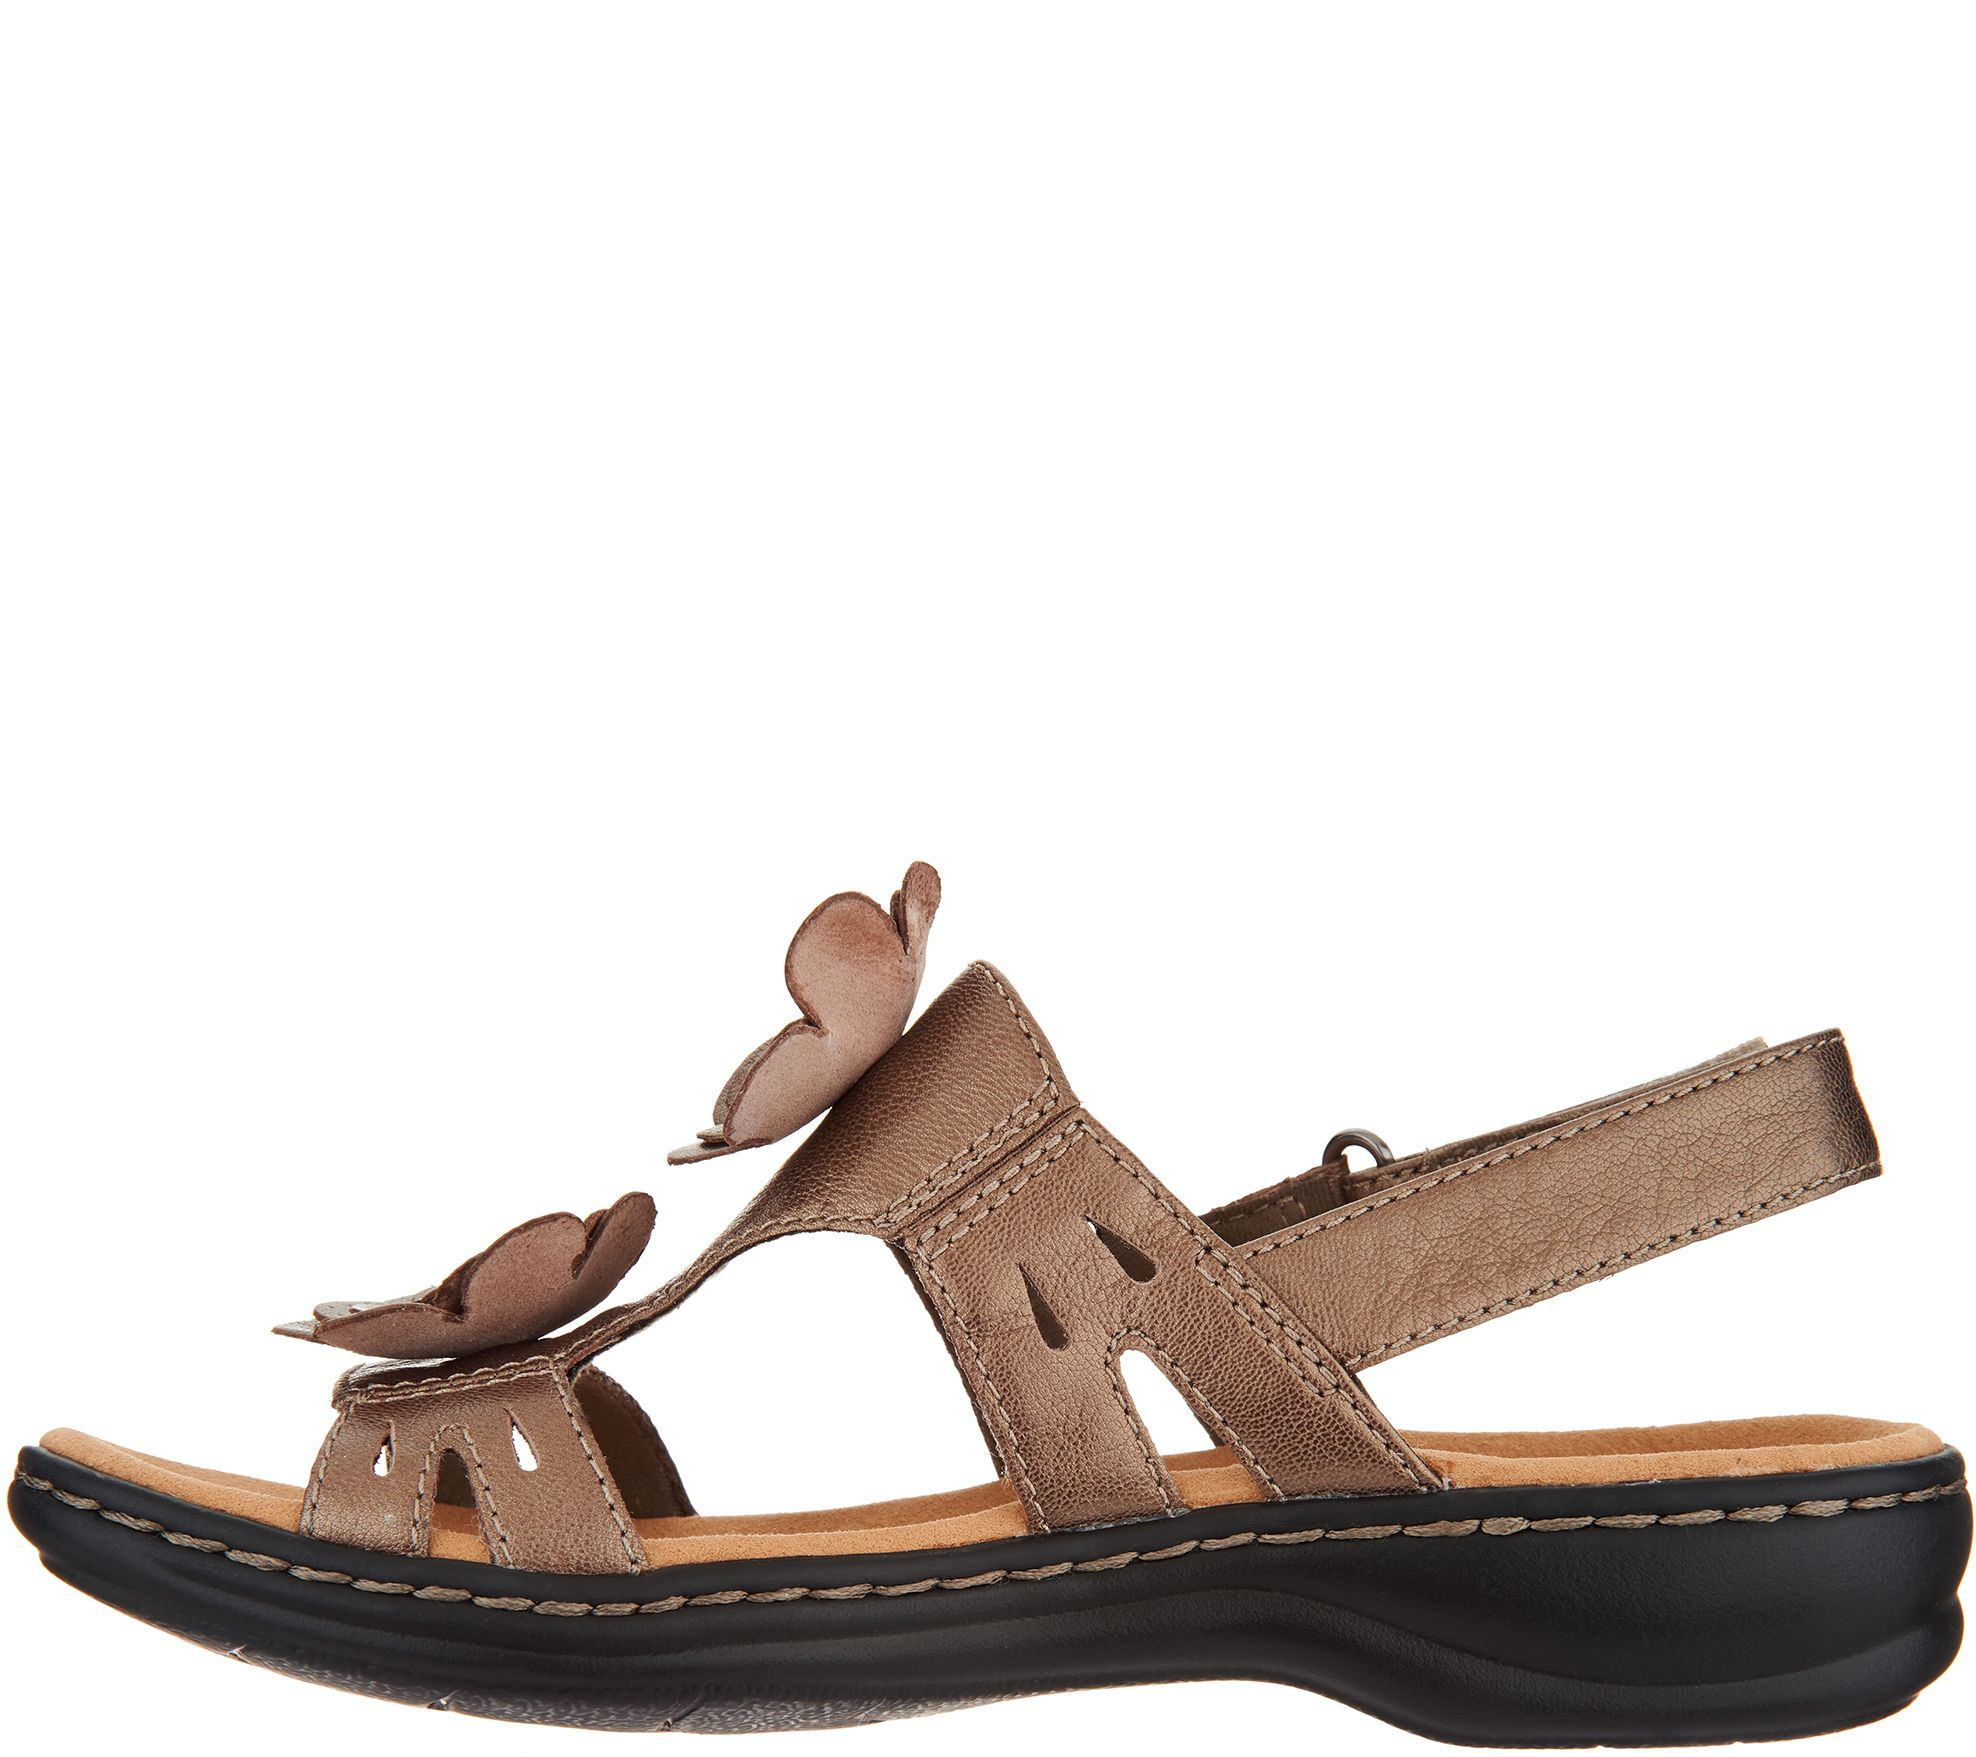 10b43c987a4d Clarks Leather Lightweight Sandals with Flower Detail - Leisa Claytin -  Page 1 — QVC.com